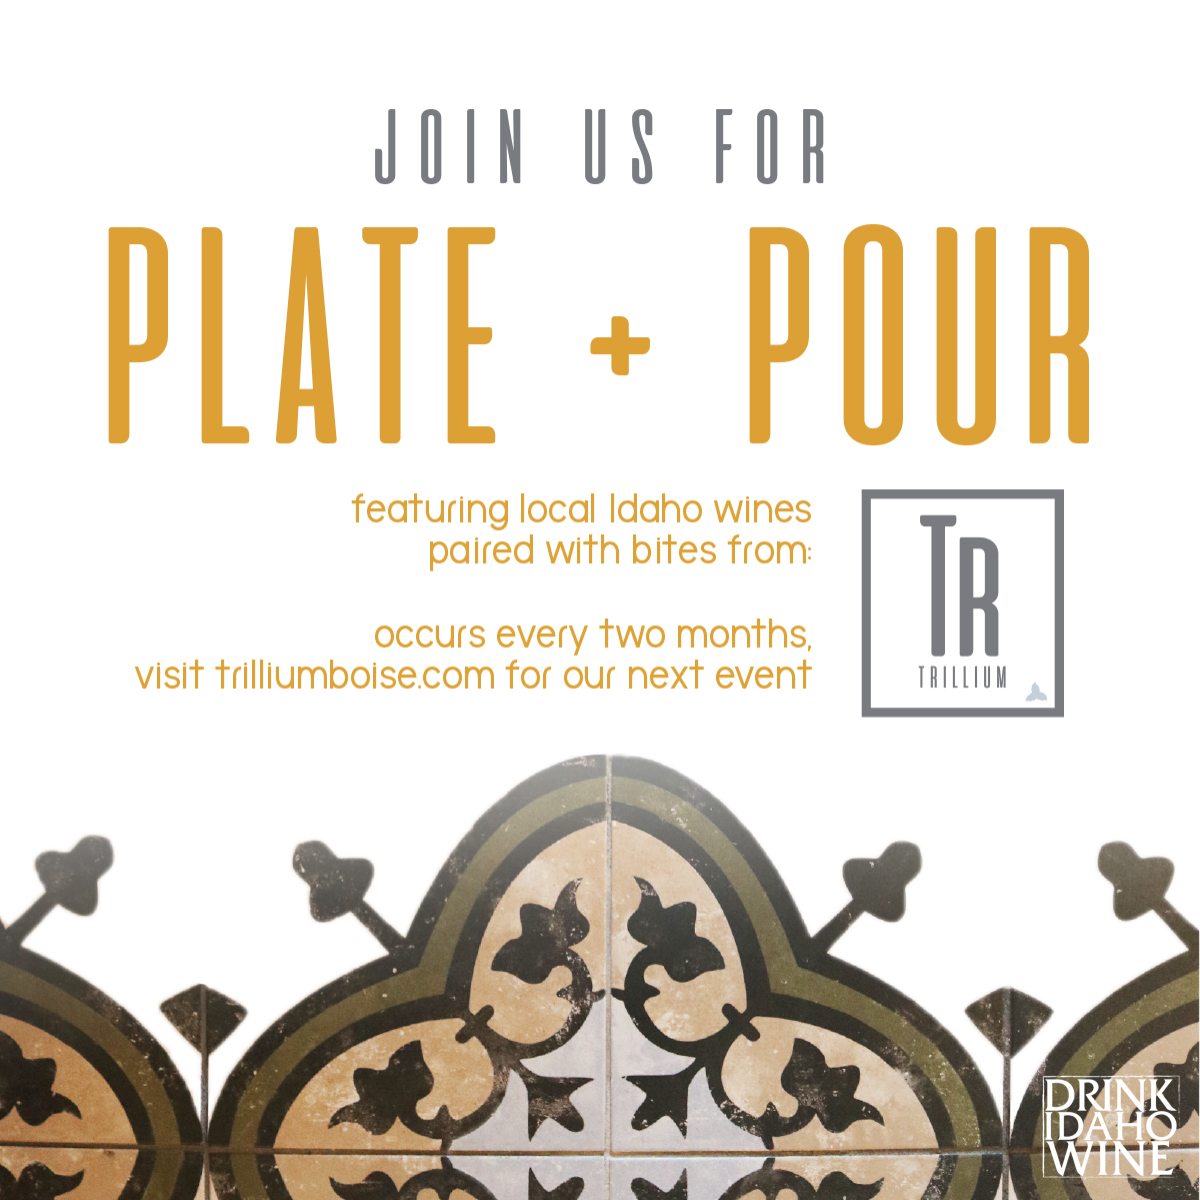 Plate and pour event at trillium